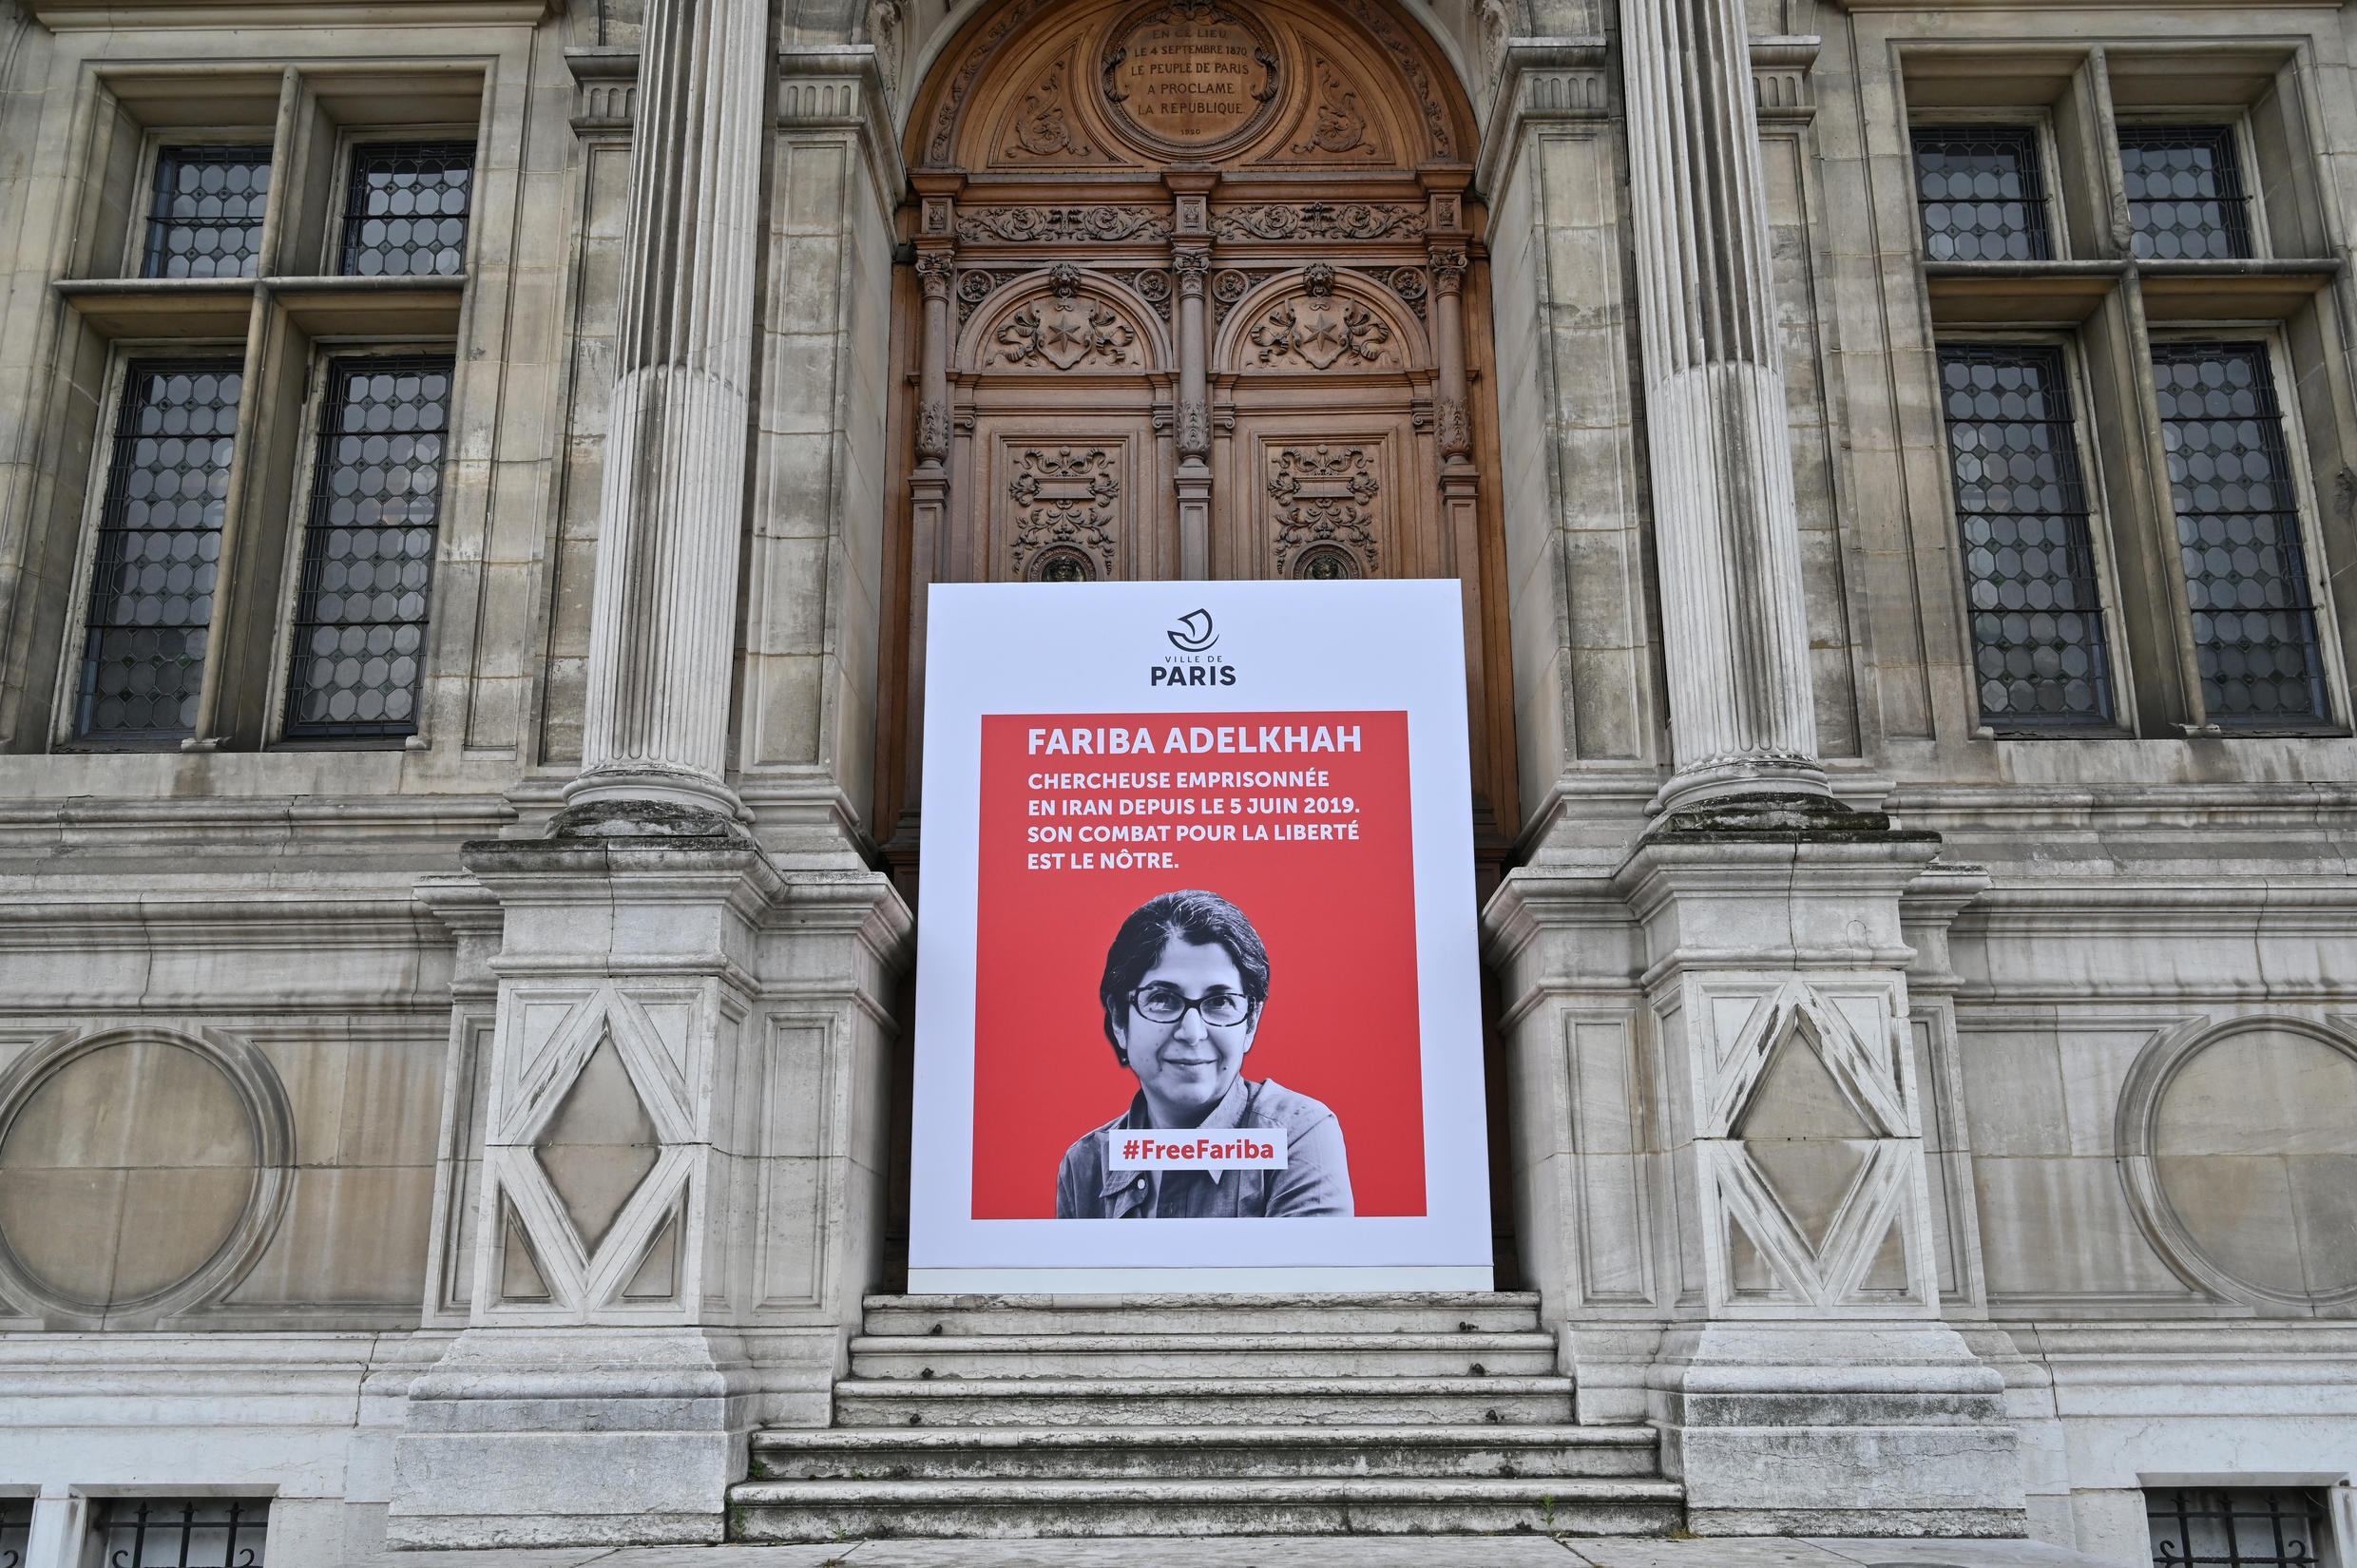 A placard with a portrait of French-Iranian academic Fariba Adelkhah, imprisoned in Iran, is placed outside Paris's city hall on June 5, 2020.